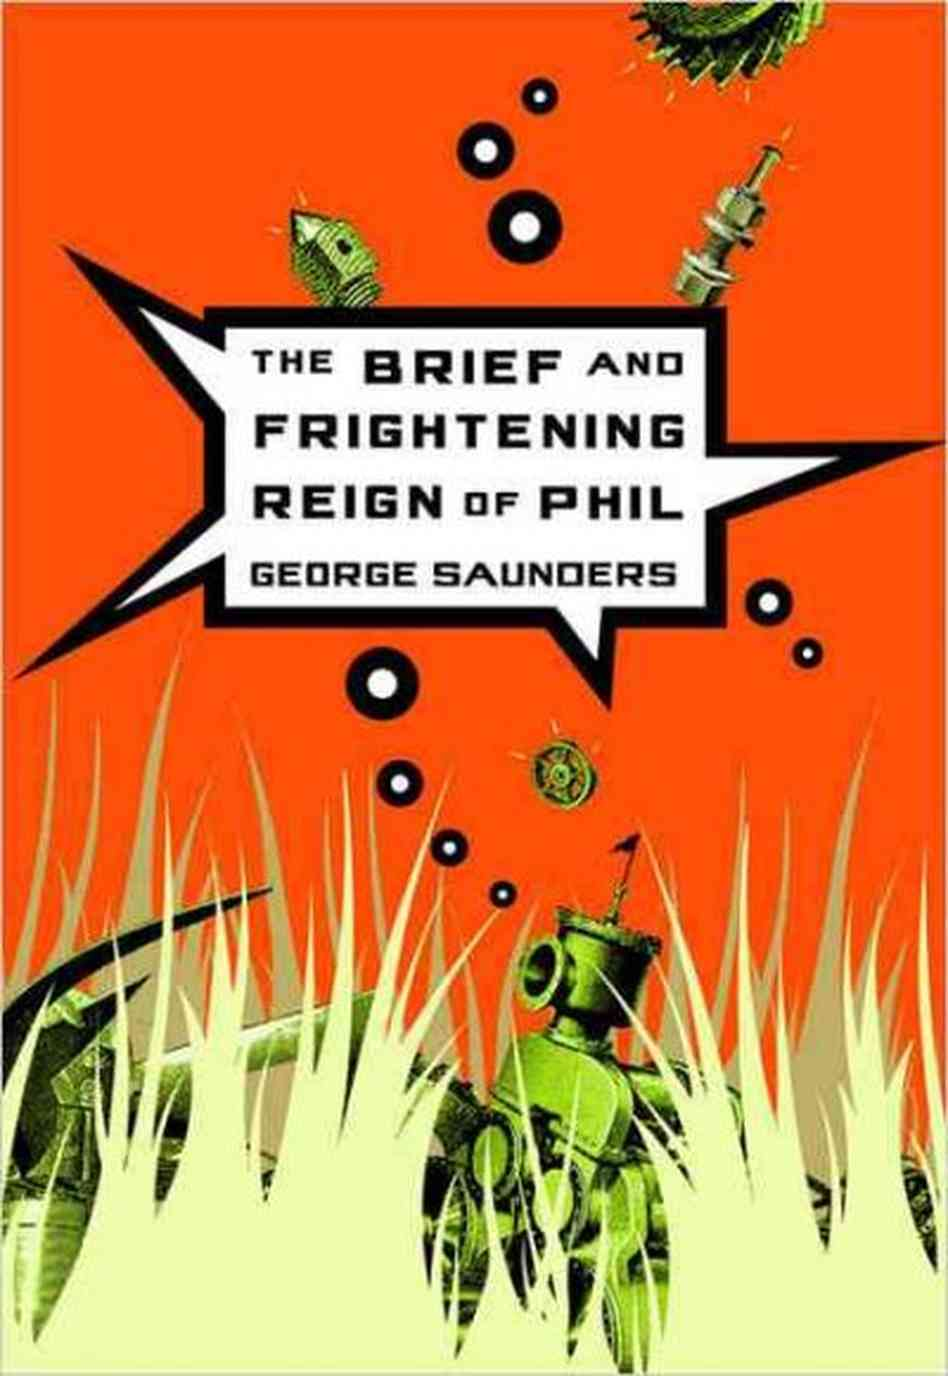 The Brief and Frightening Reign of Phil by George Saunders.jpg